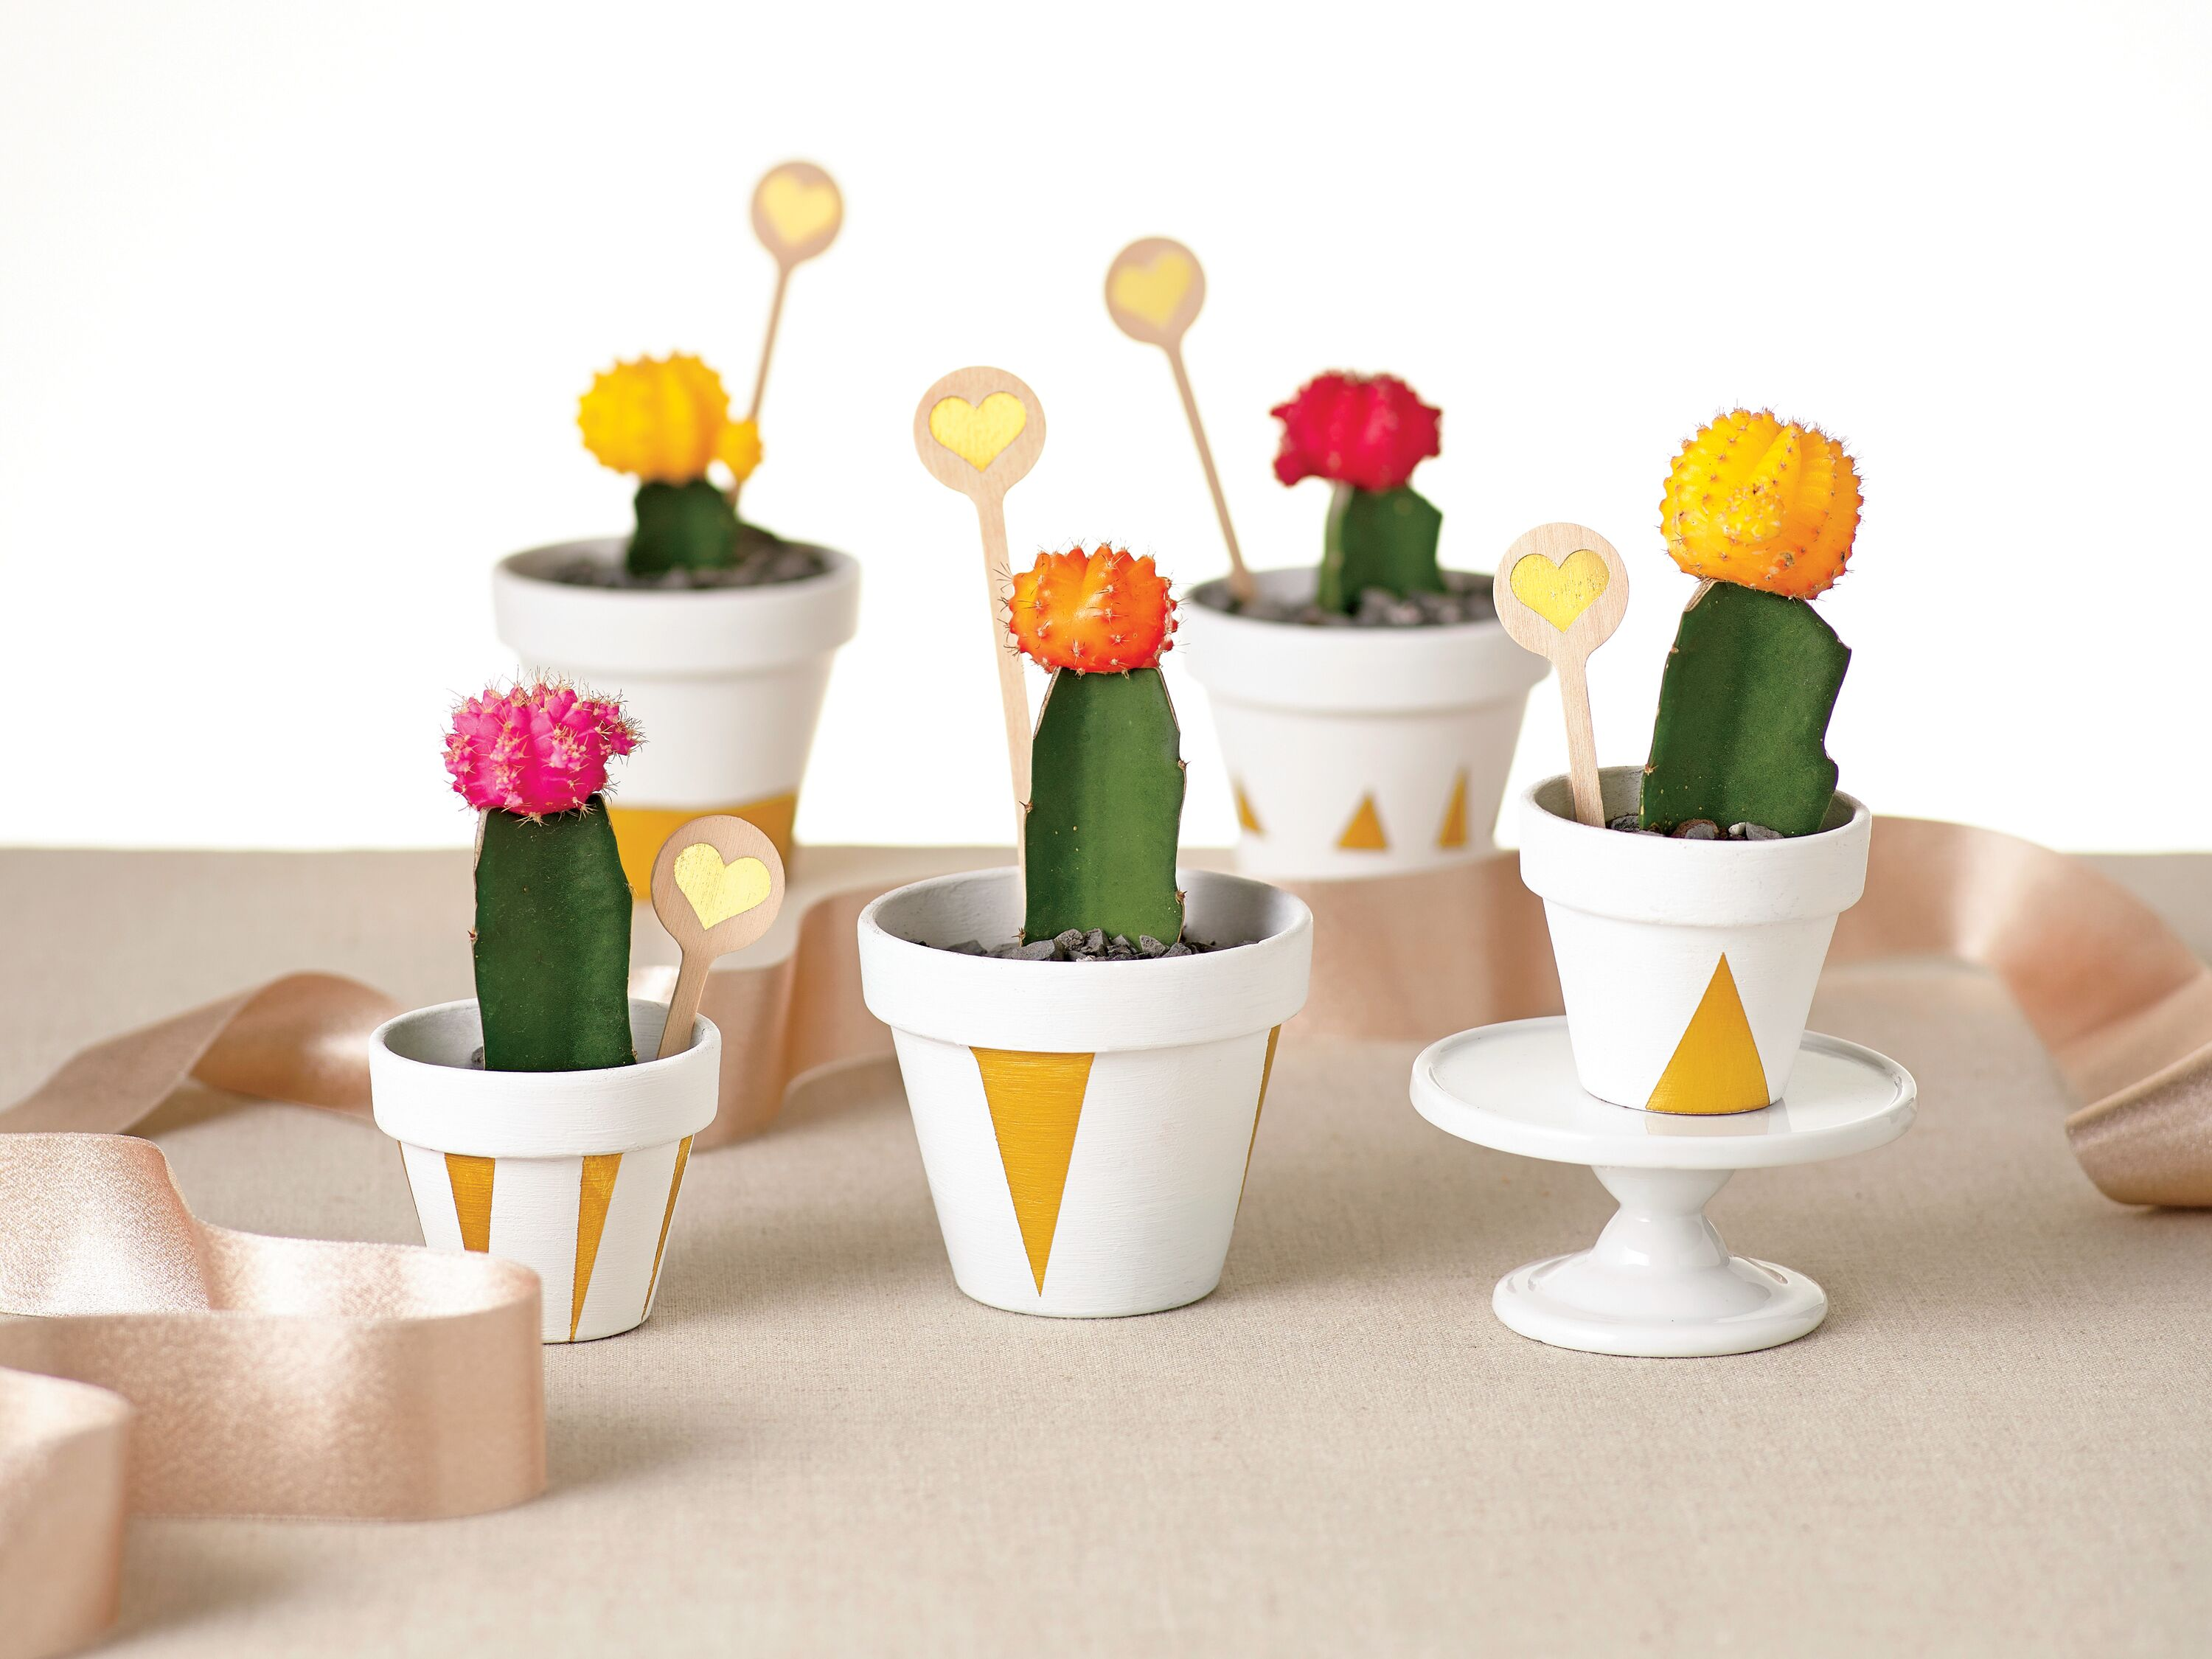 How to DIY an Awesome Gold-Painted Cactus Favor